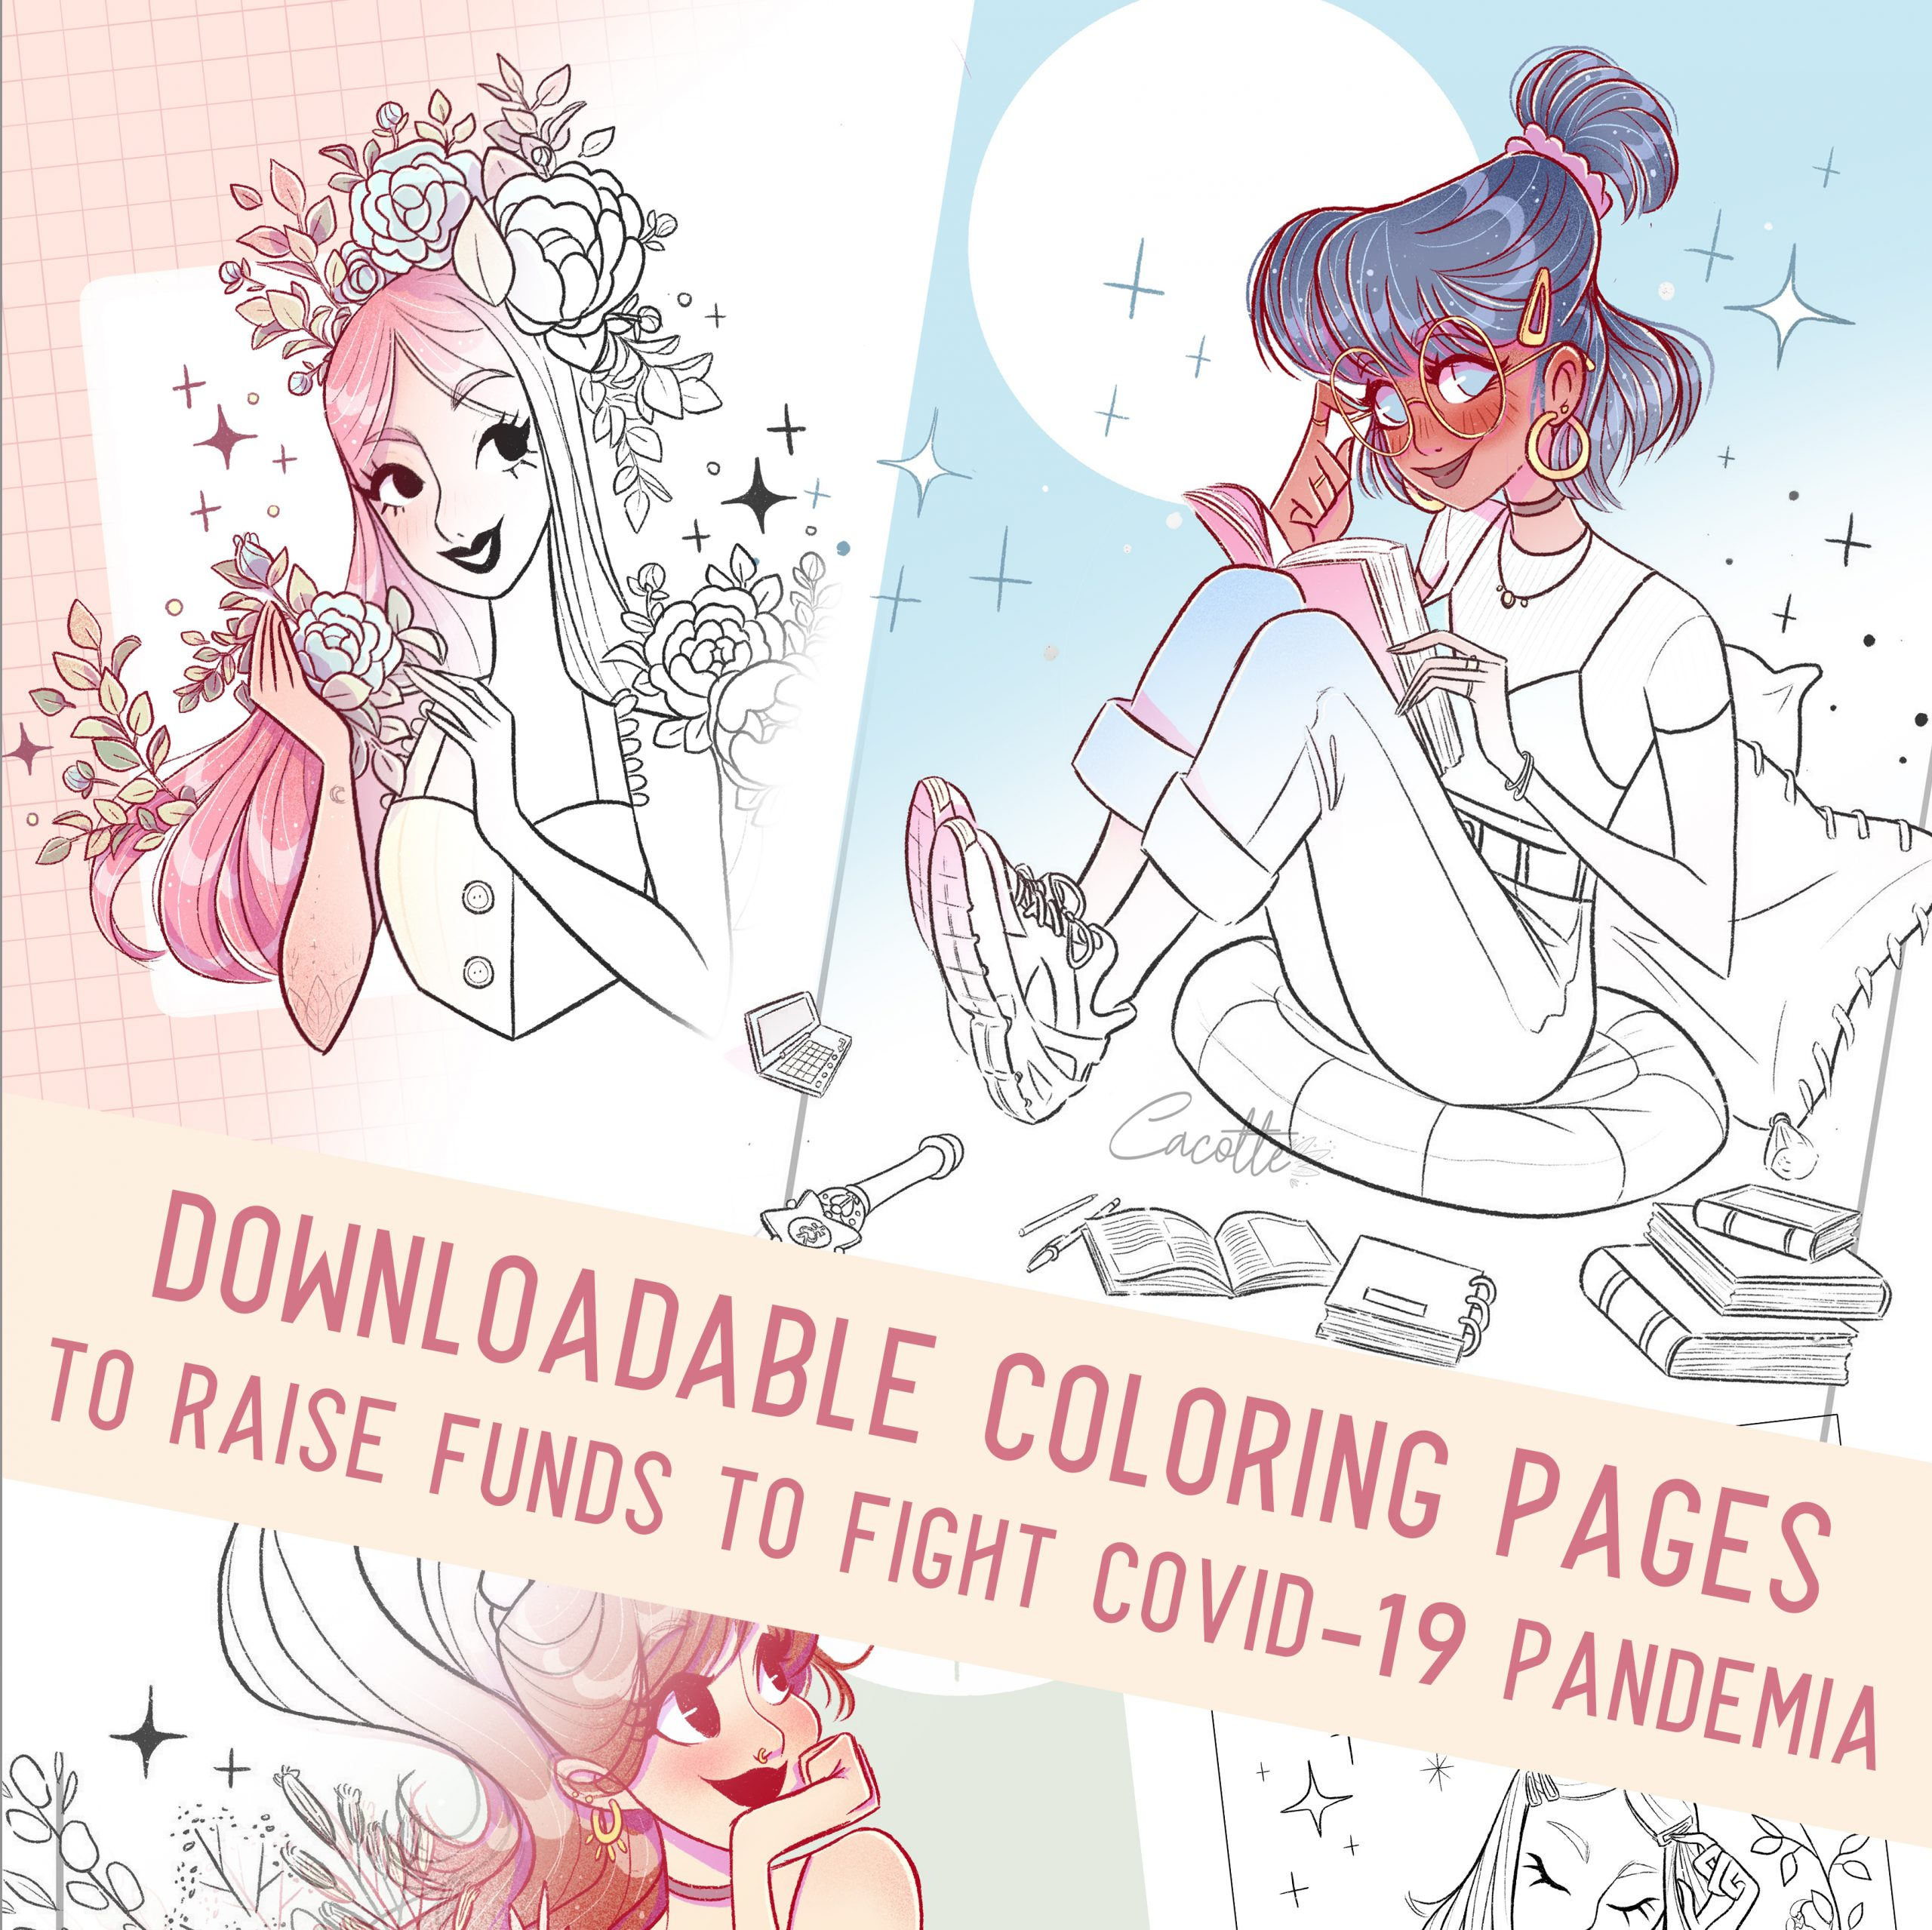 I made downloadable Coloring Pages to raise funds against COVID-19. LINK IN MY SHOP